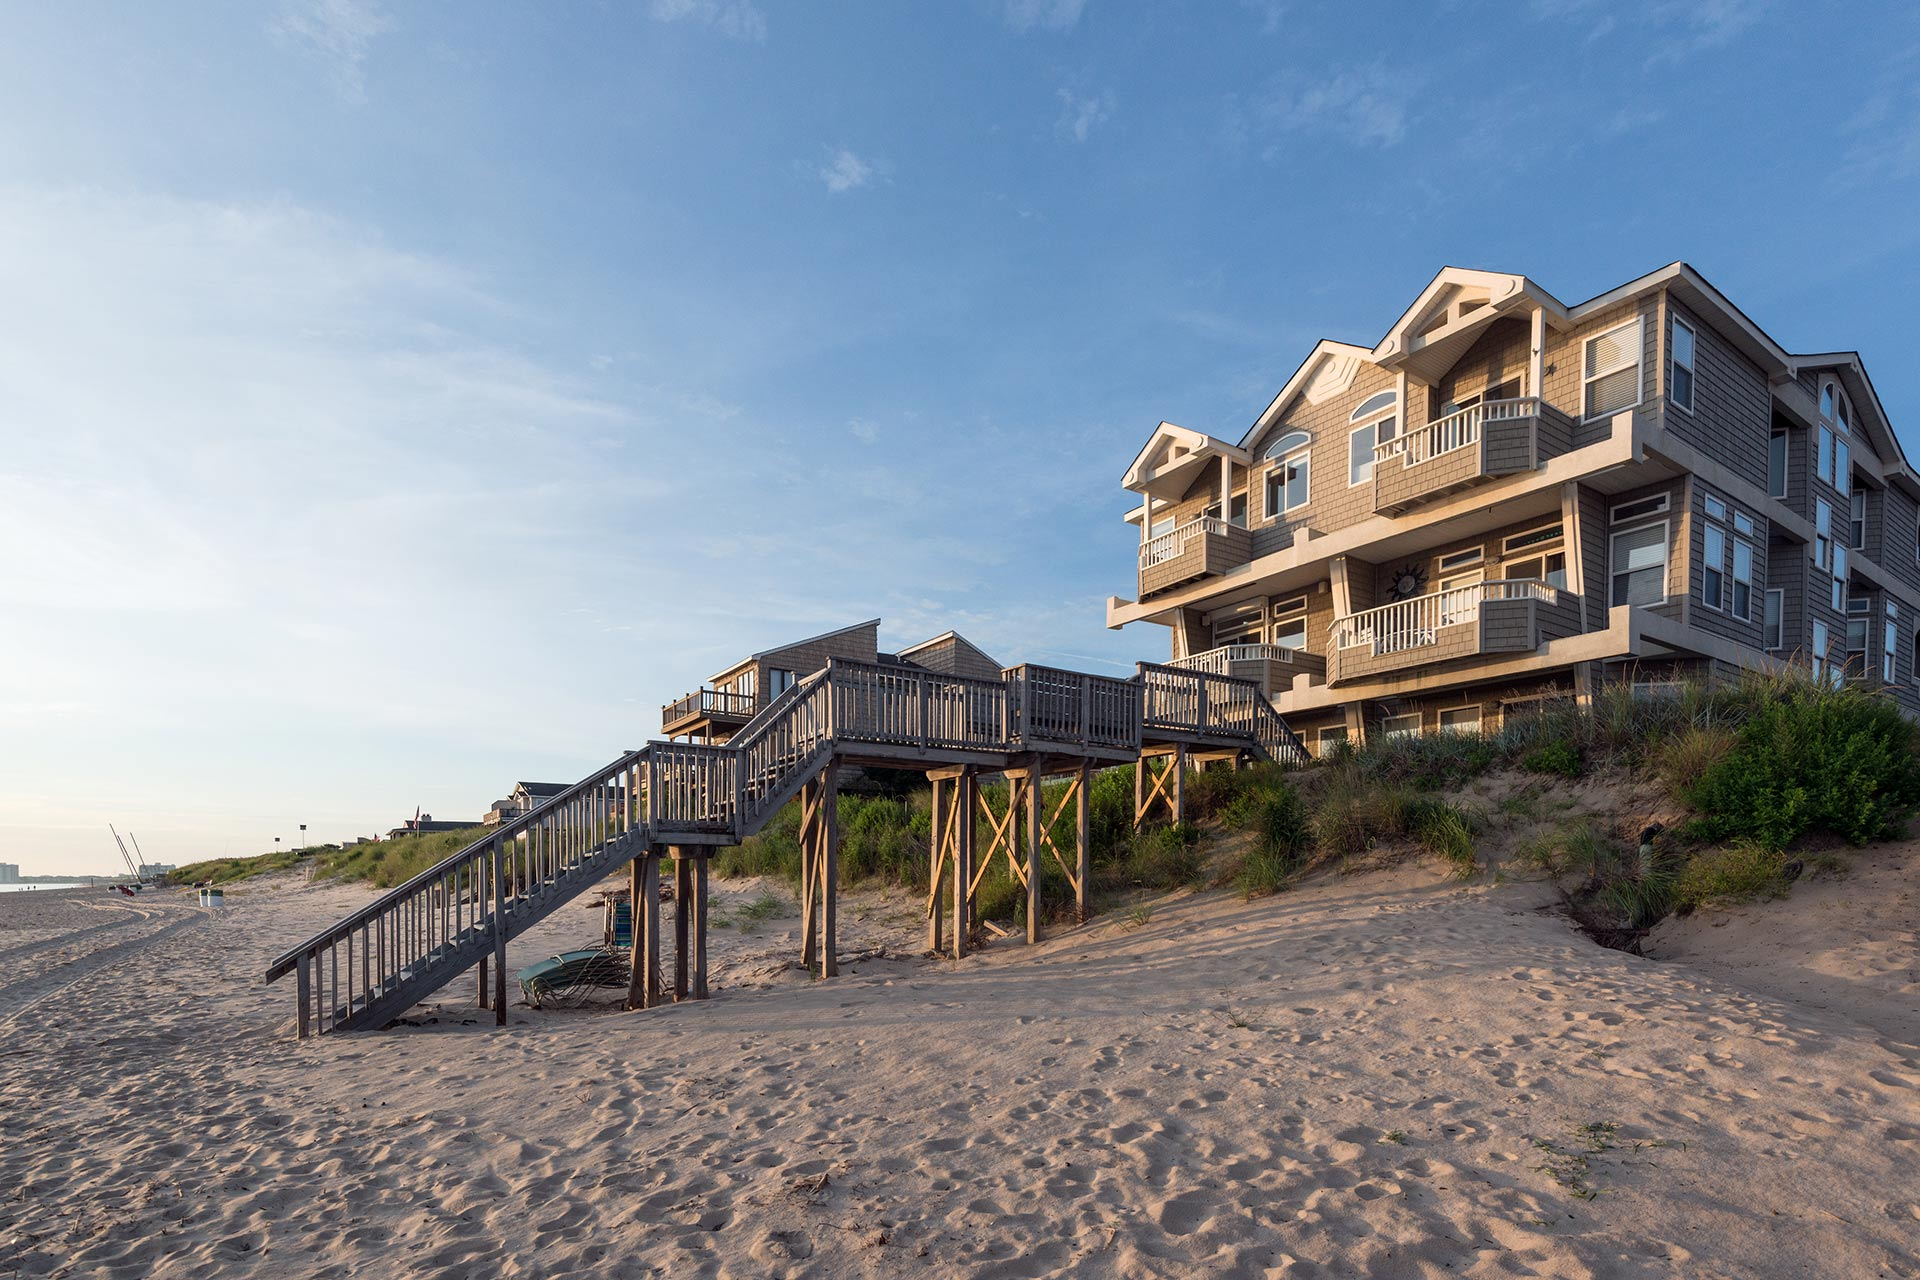 A vacation rental house located right on the beach.